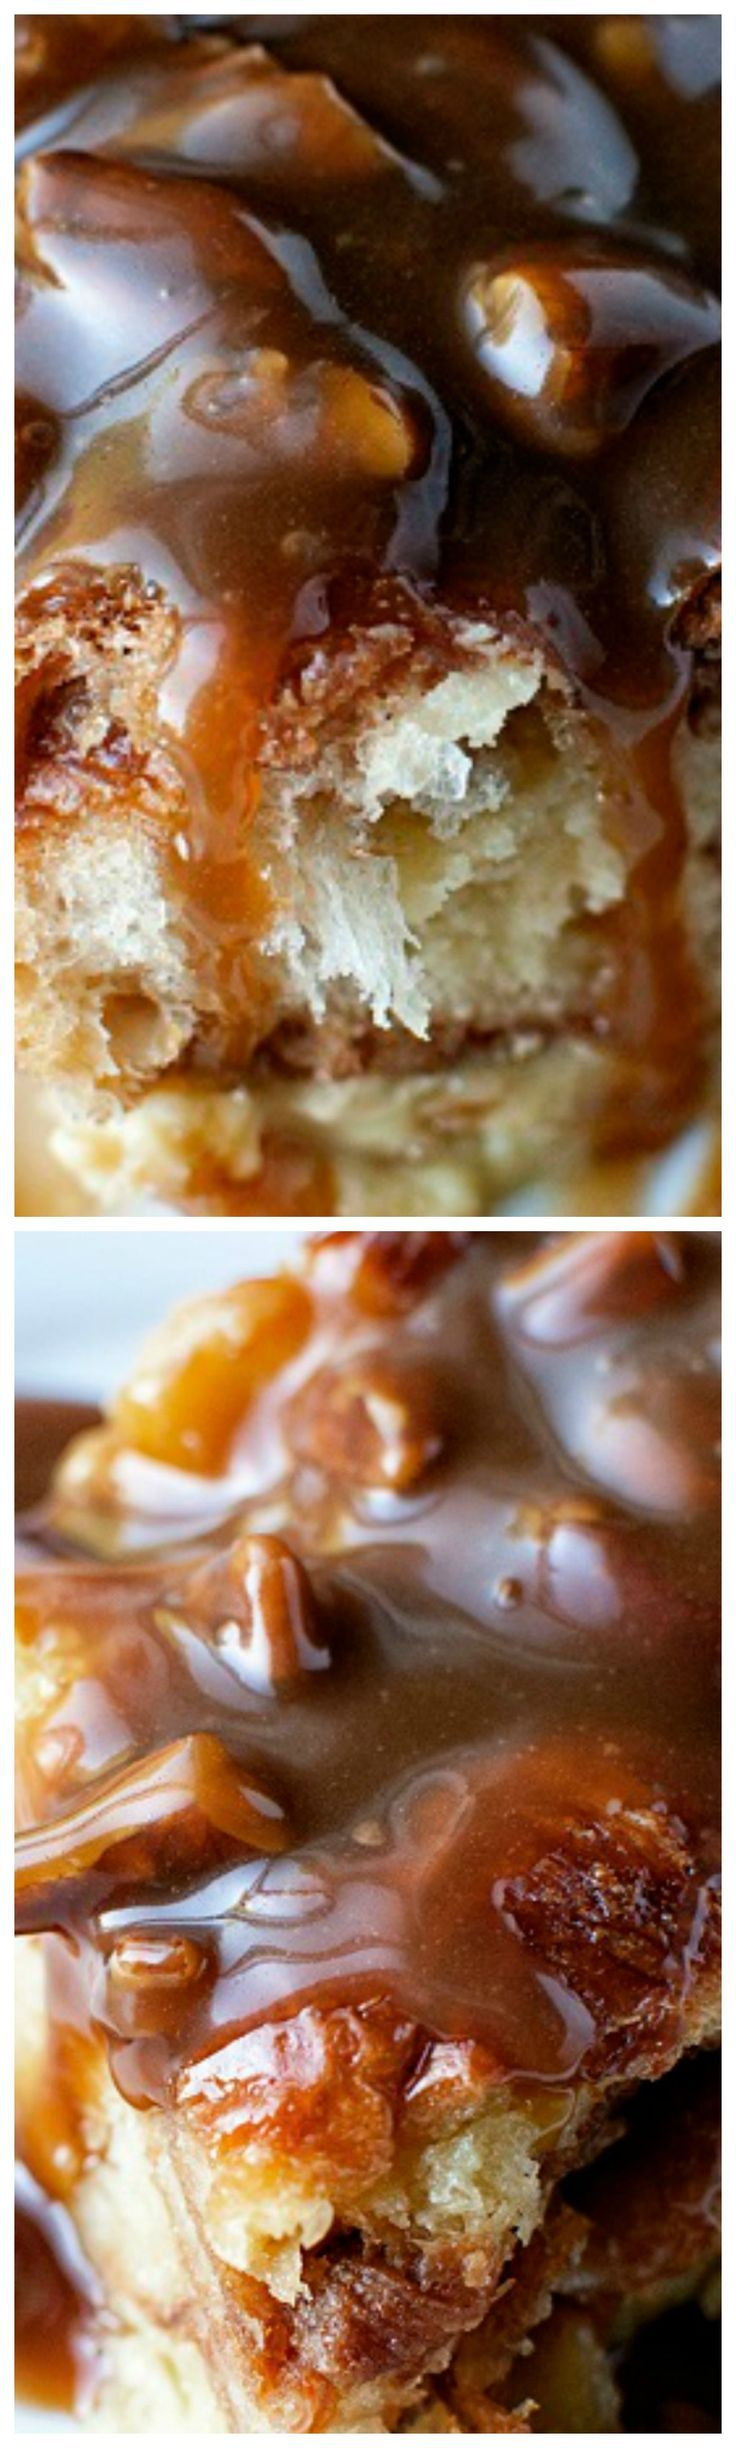 Croissant Bread Pudding with Pecan Toffee Sauce ~ Insanely good